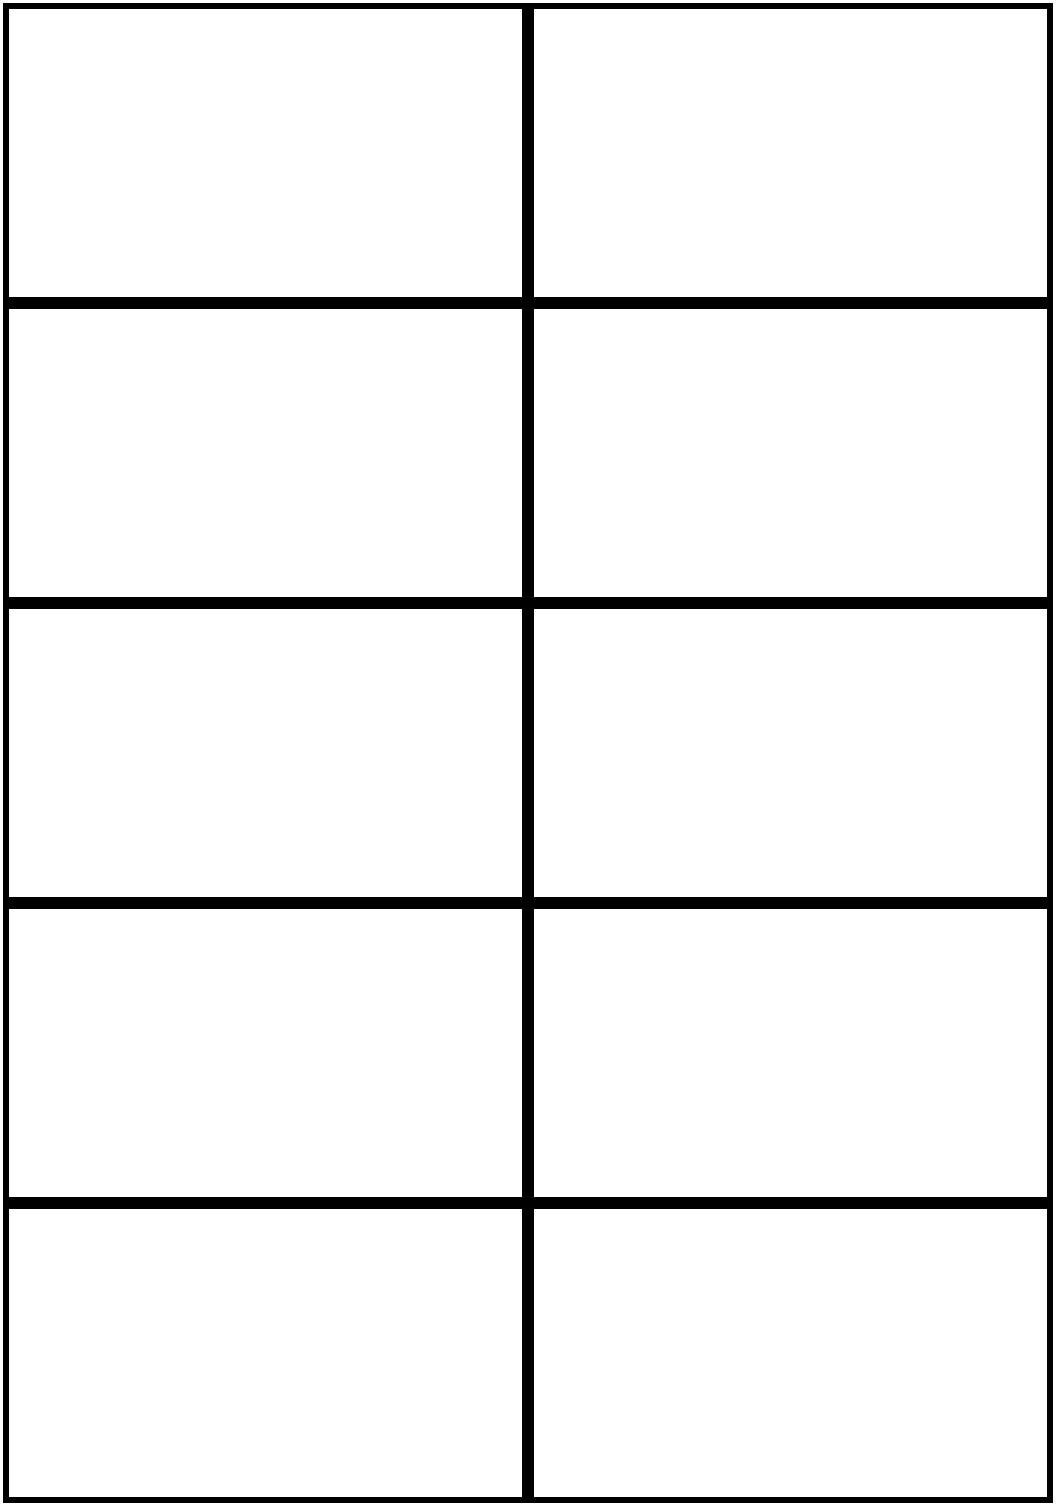 Image Result For Flashcards Template Word | Worksheets | Free - Free Printable Business Templates